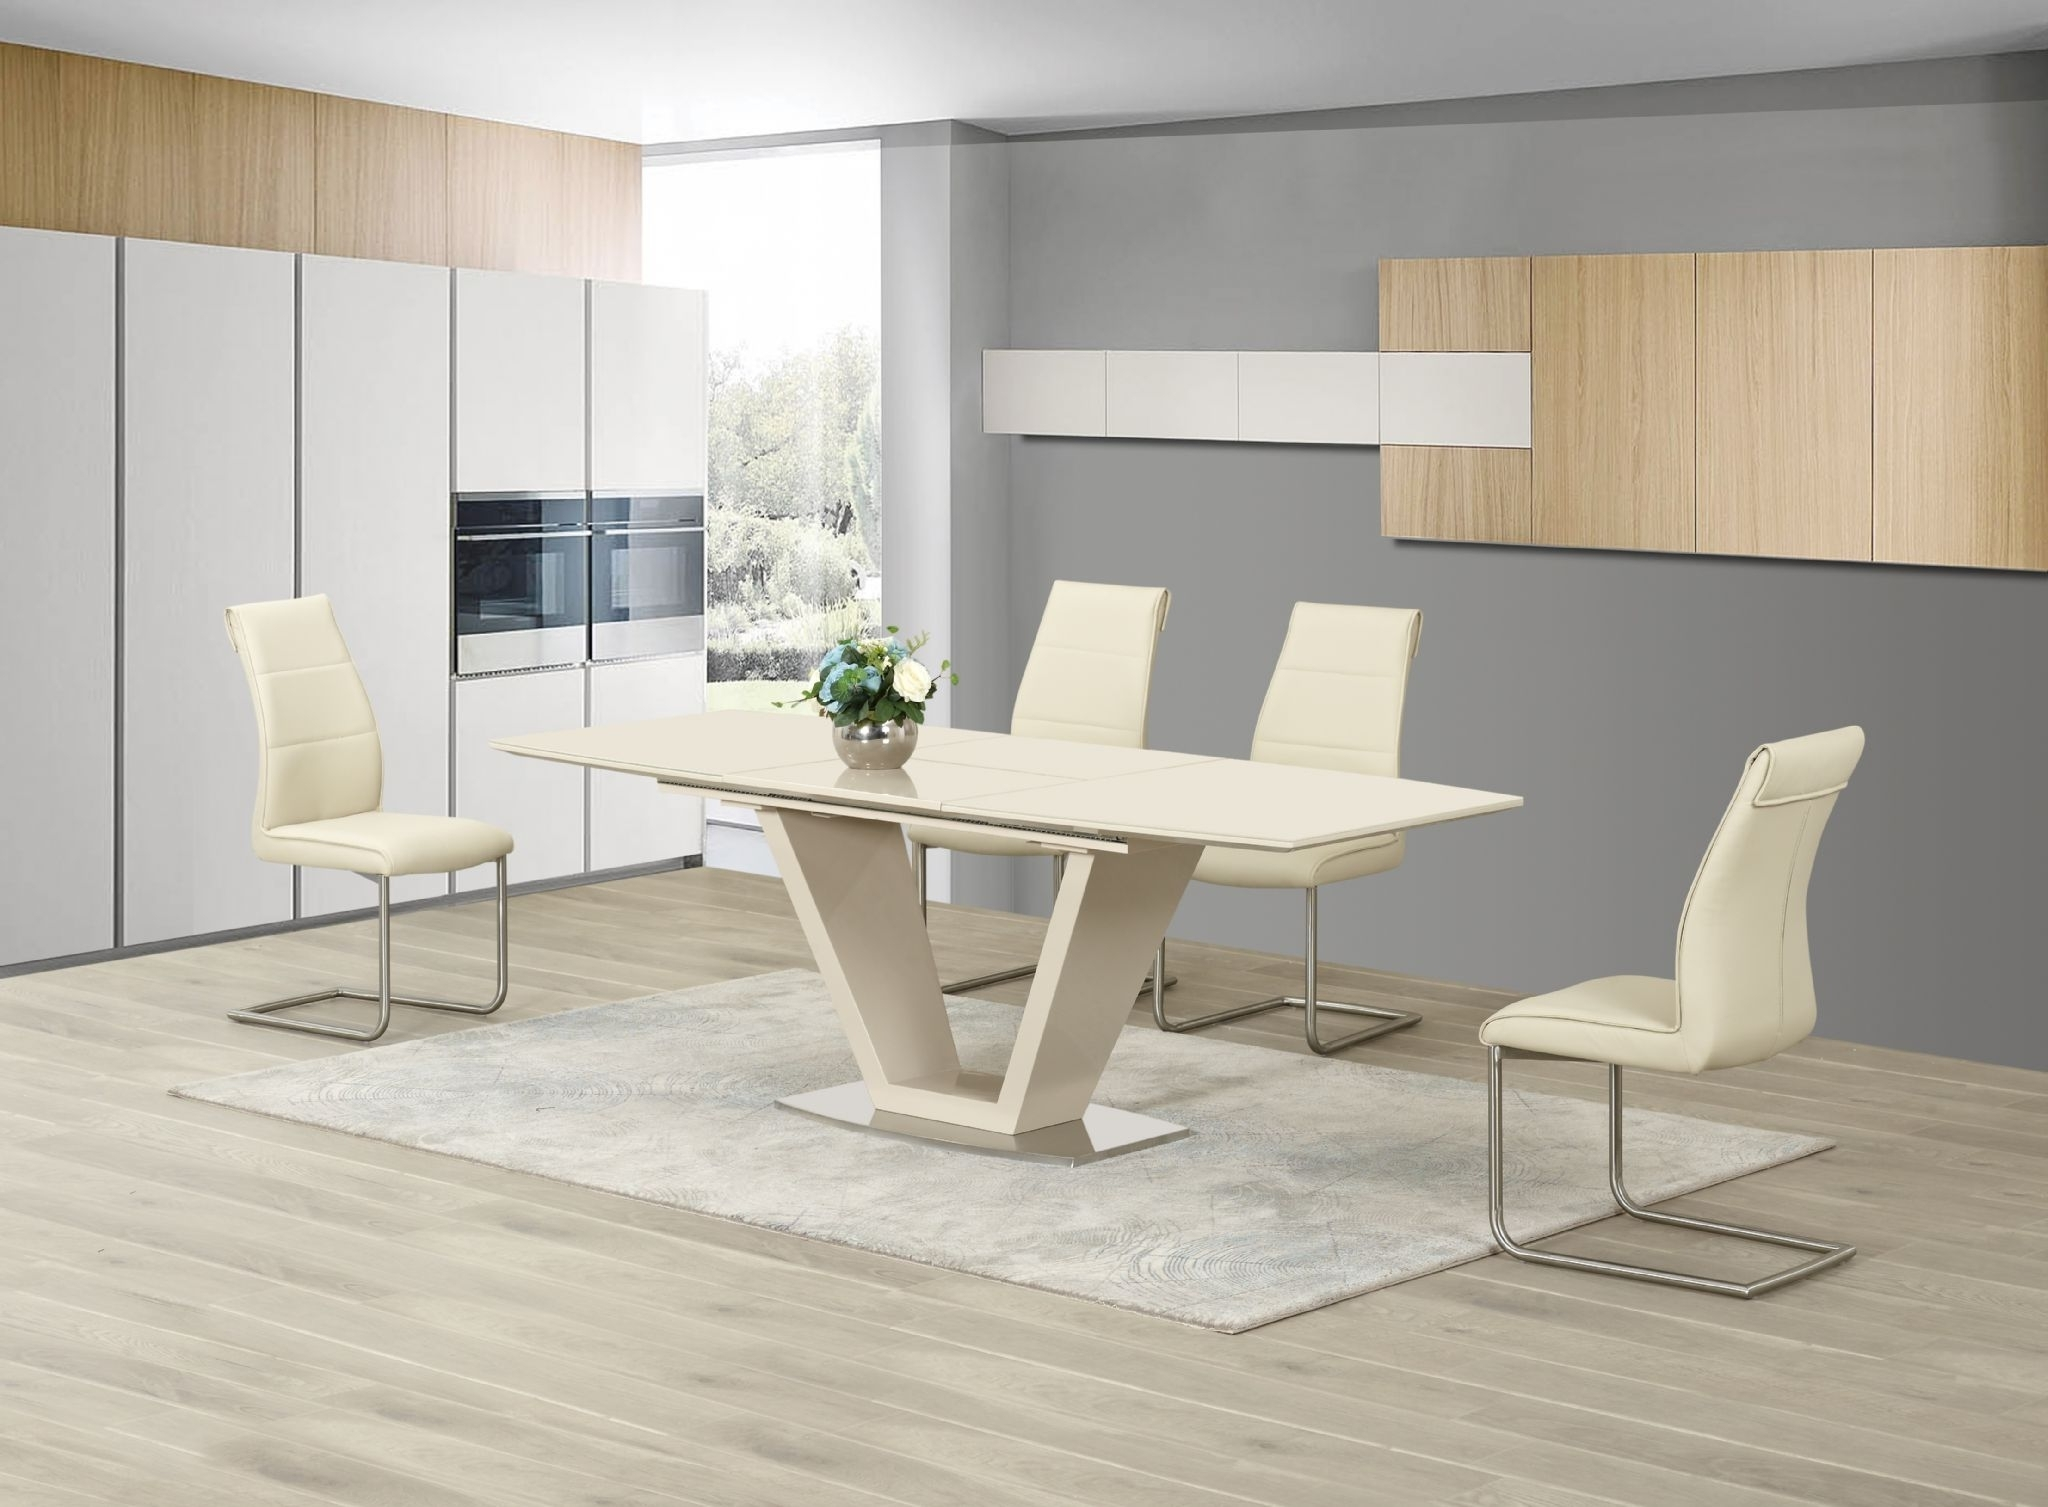 Ga Loriga Cream Gloss Glass Designer Dining Table Extending 160 220 Pertaining To Best And Newest Extendable Dining Tables 6 Chairs (View 21 of 25)